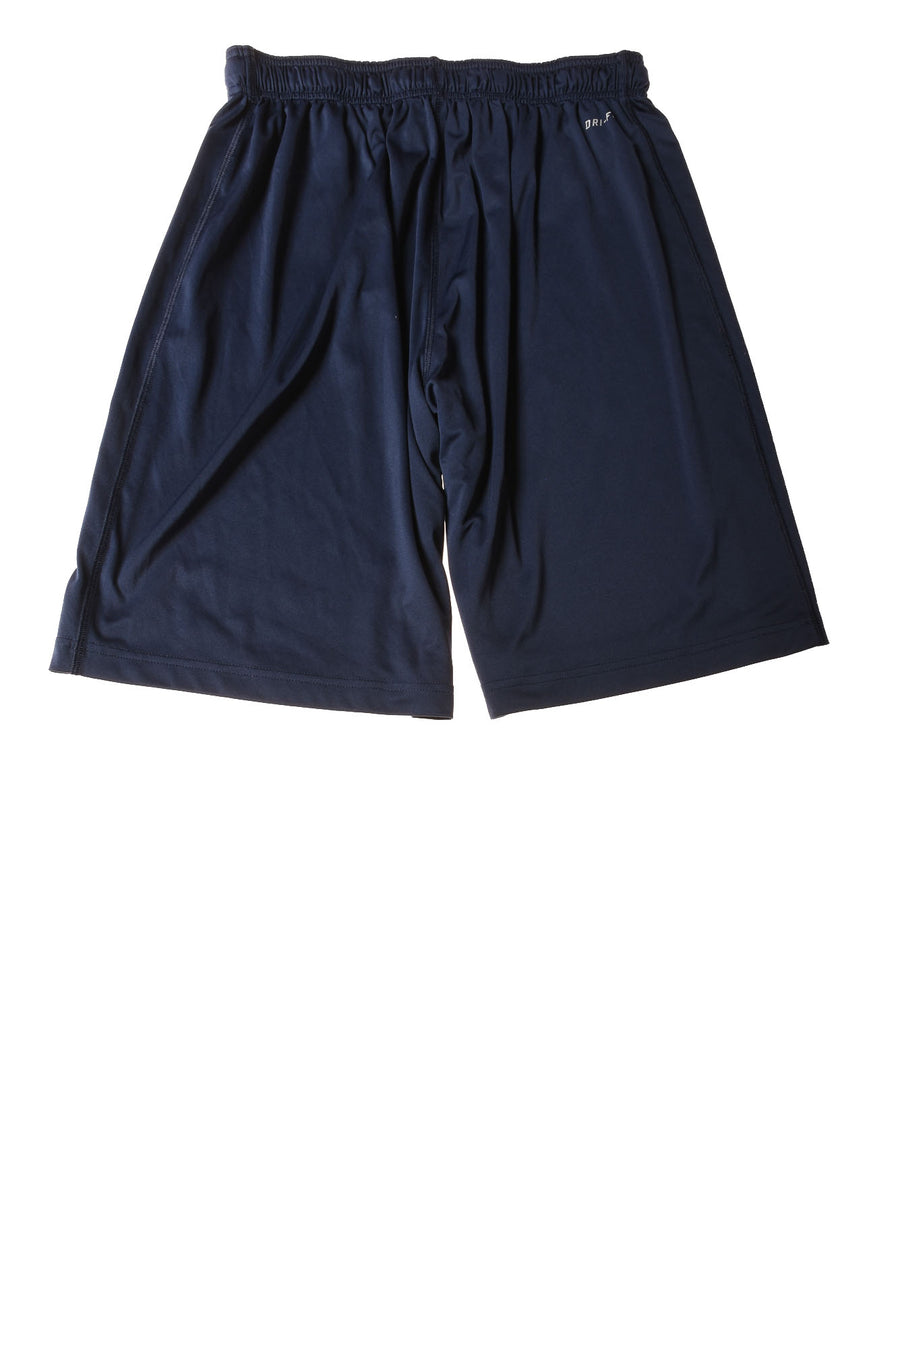 USED Nike Men's Shorts X-Large Blue